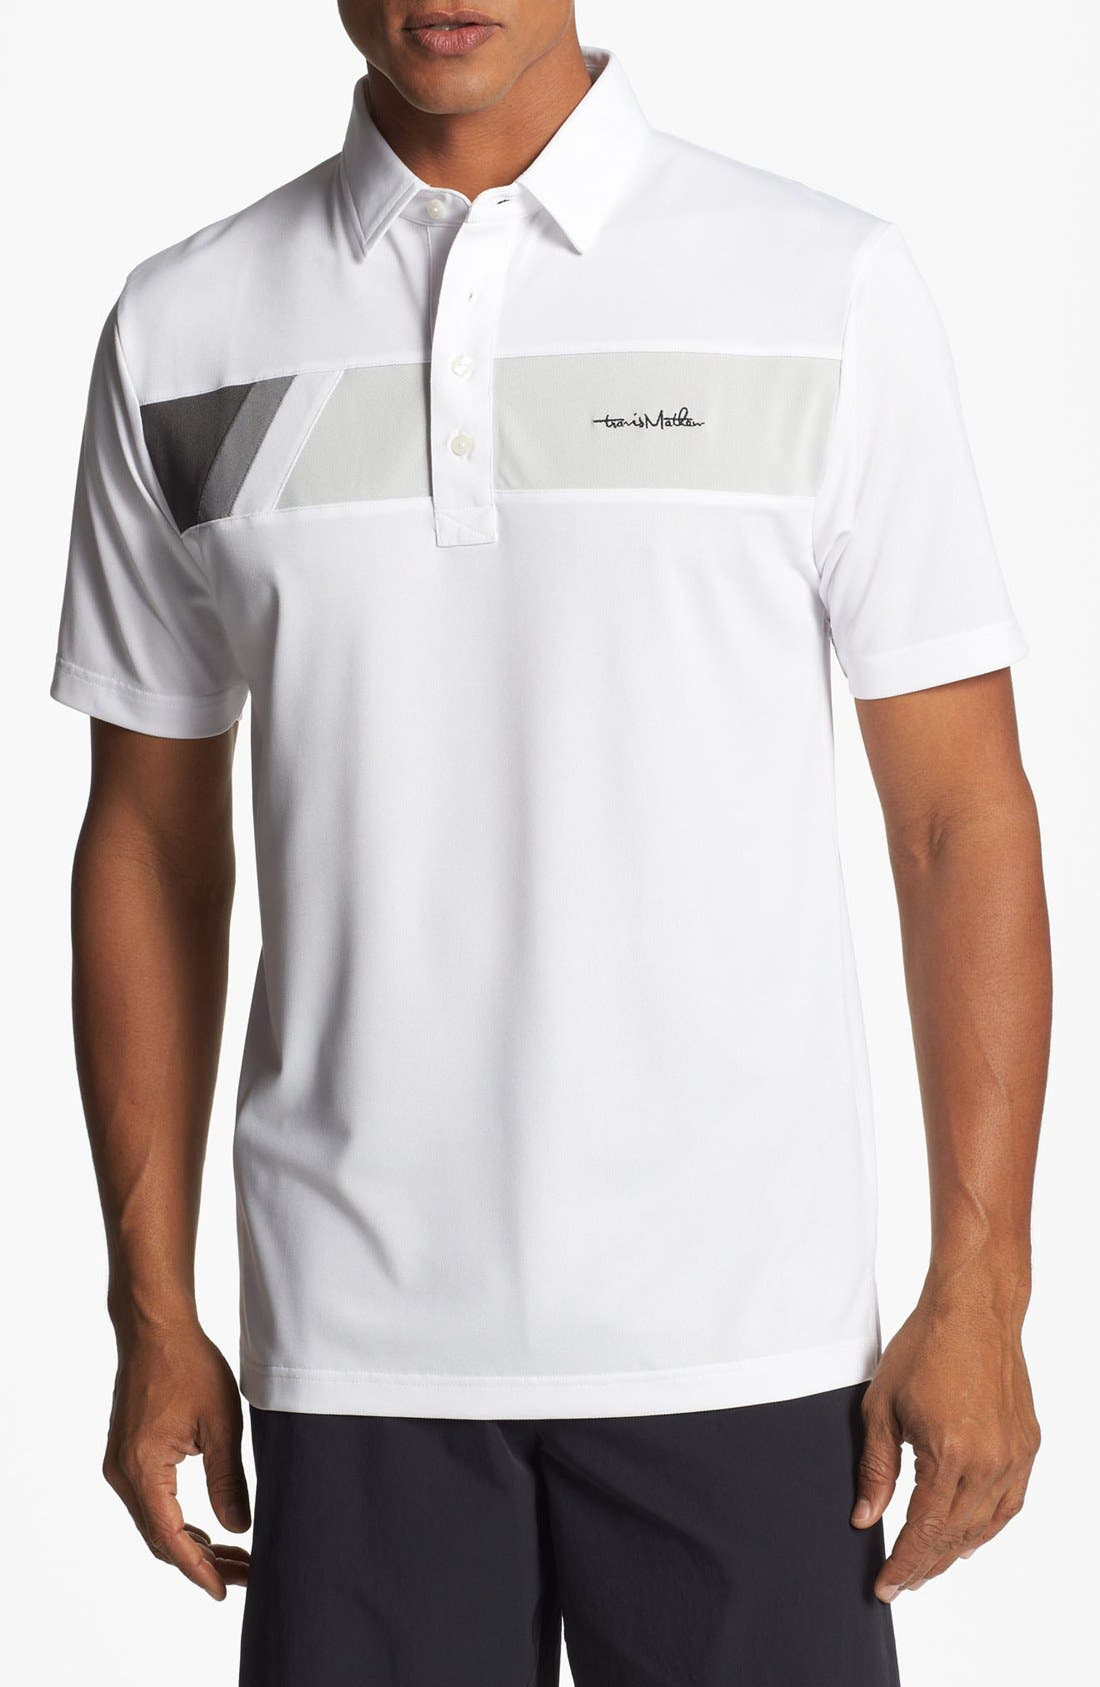 Alternate Image 1 Selected - Travis Mathew Regular Fit Golf Polo